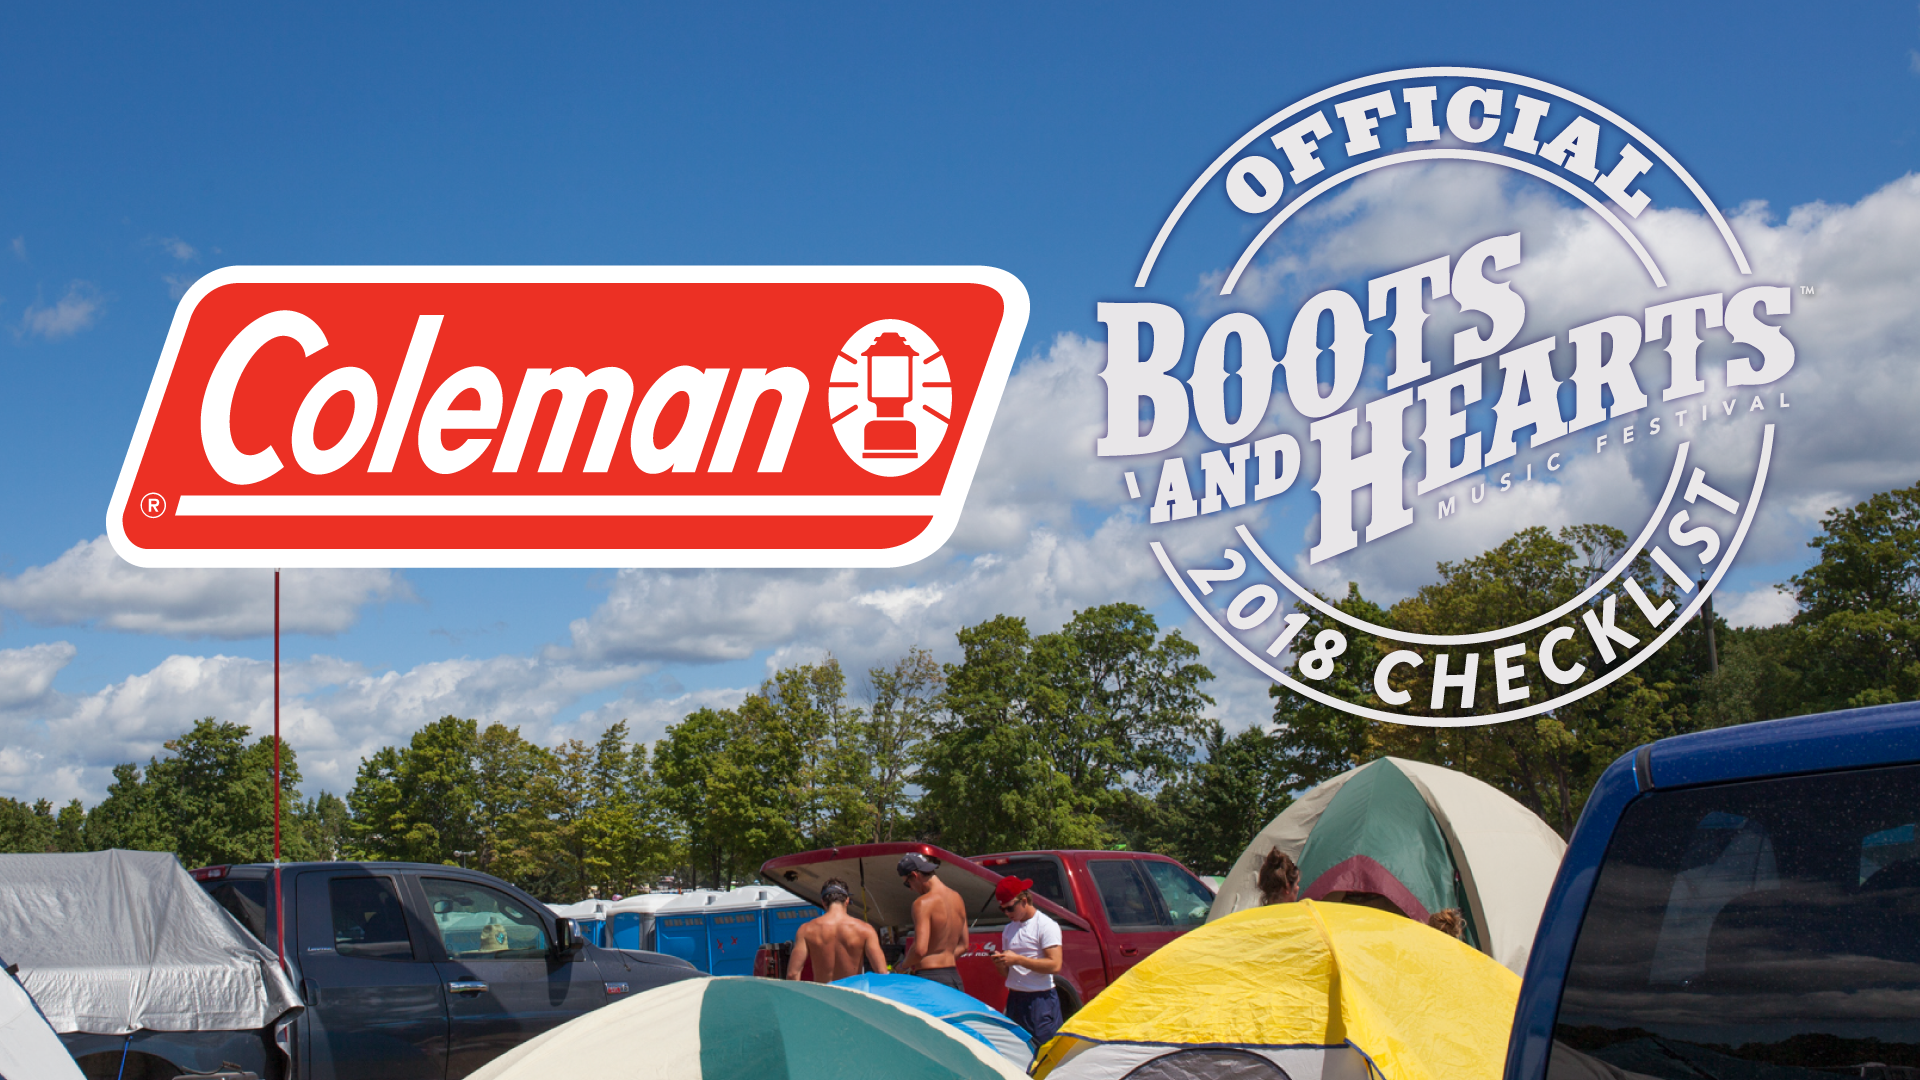 Boots u0026 Hearts Ultimate Packing List By Coleman & Boots u0026 Hearts Ultimate Packing List By Coleman - BOOTS u0026 HEARTS 2019